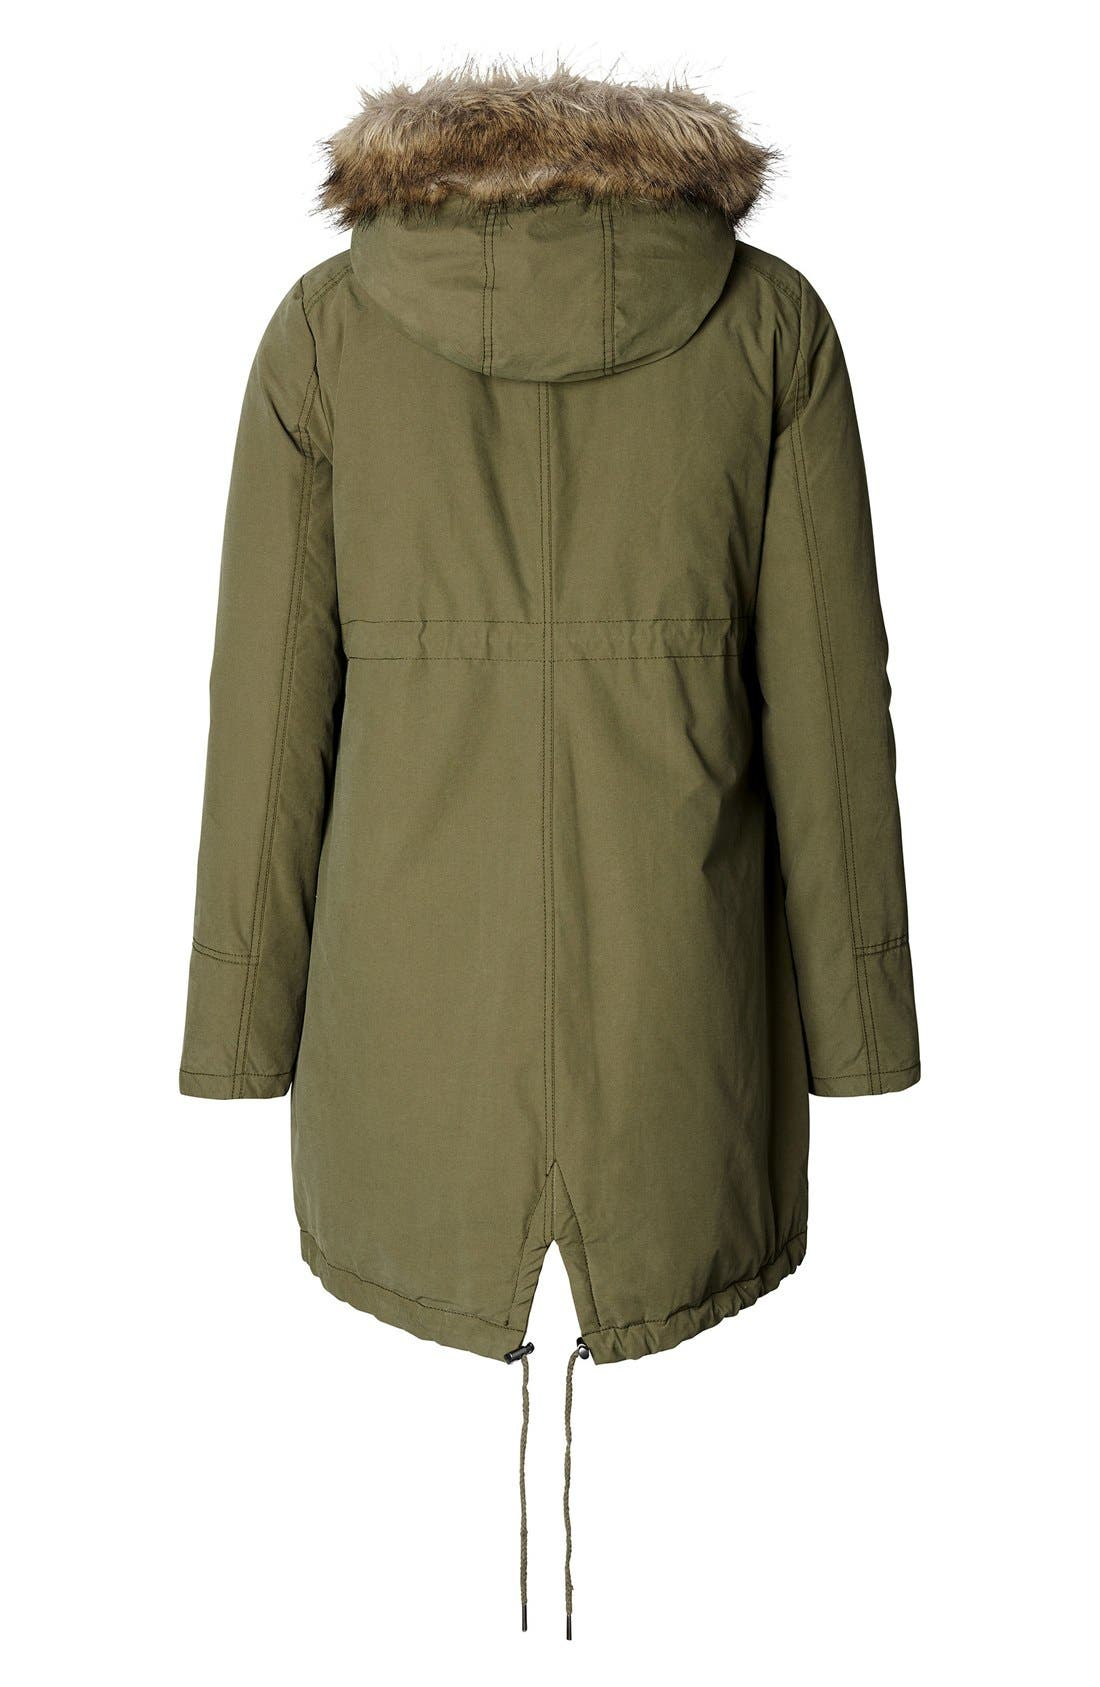 Malin Maternity Jacket with Faux Fur Trim,                             Alternate thumbnail 3, color,                             ARMY